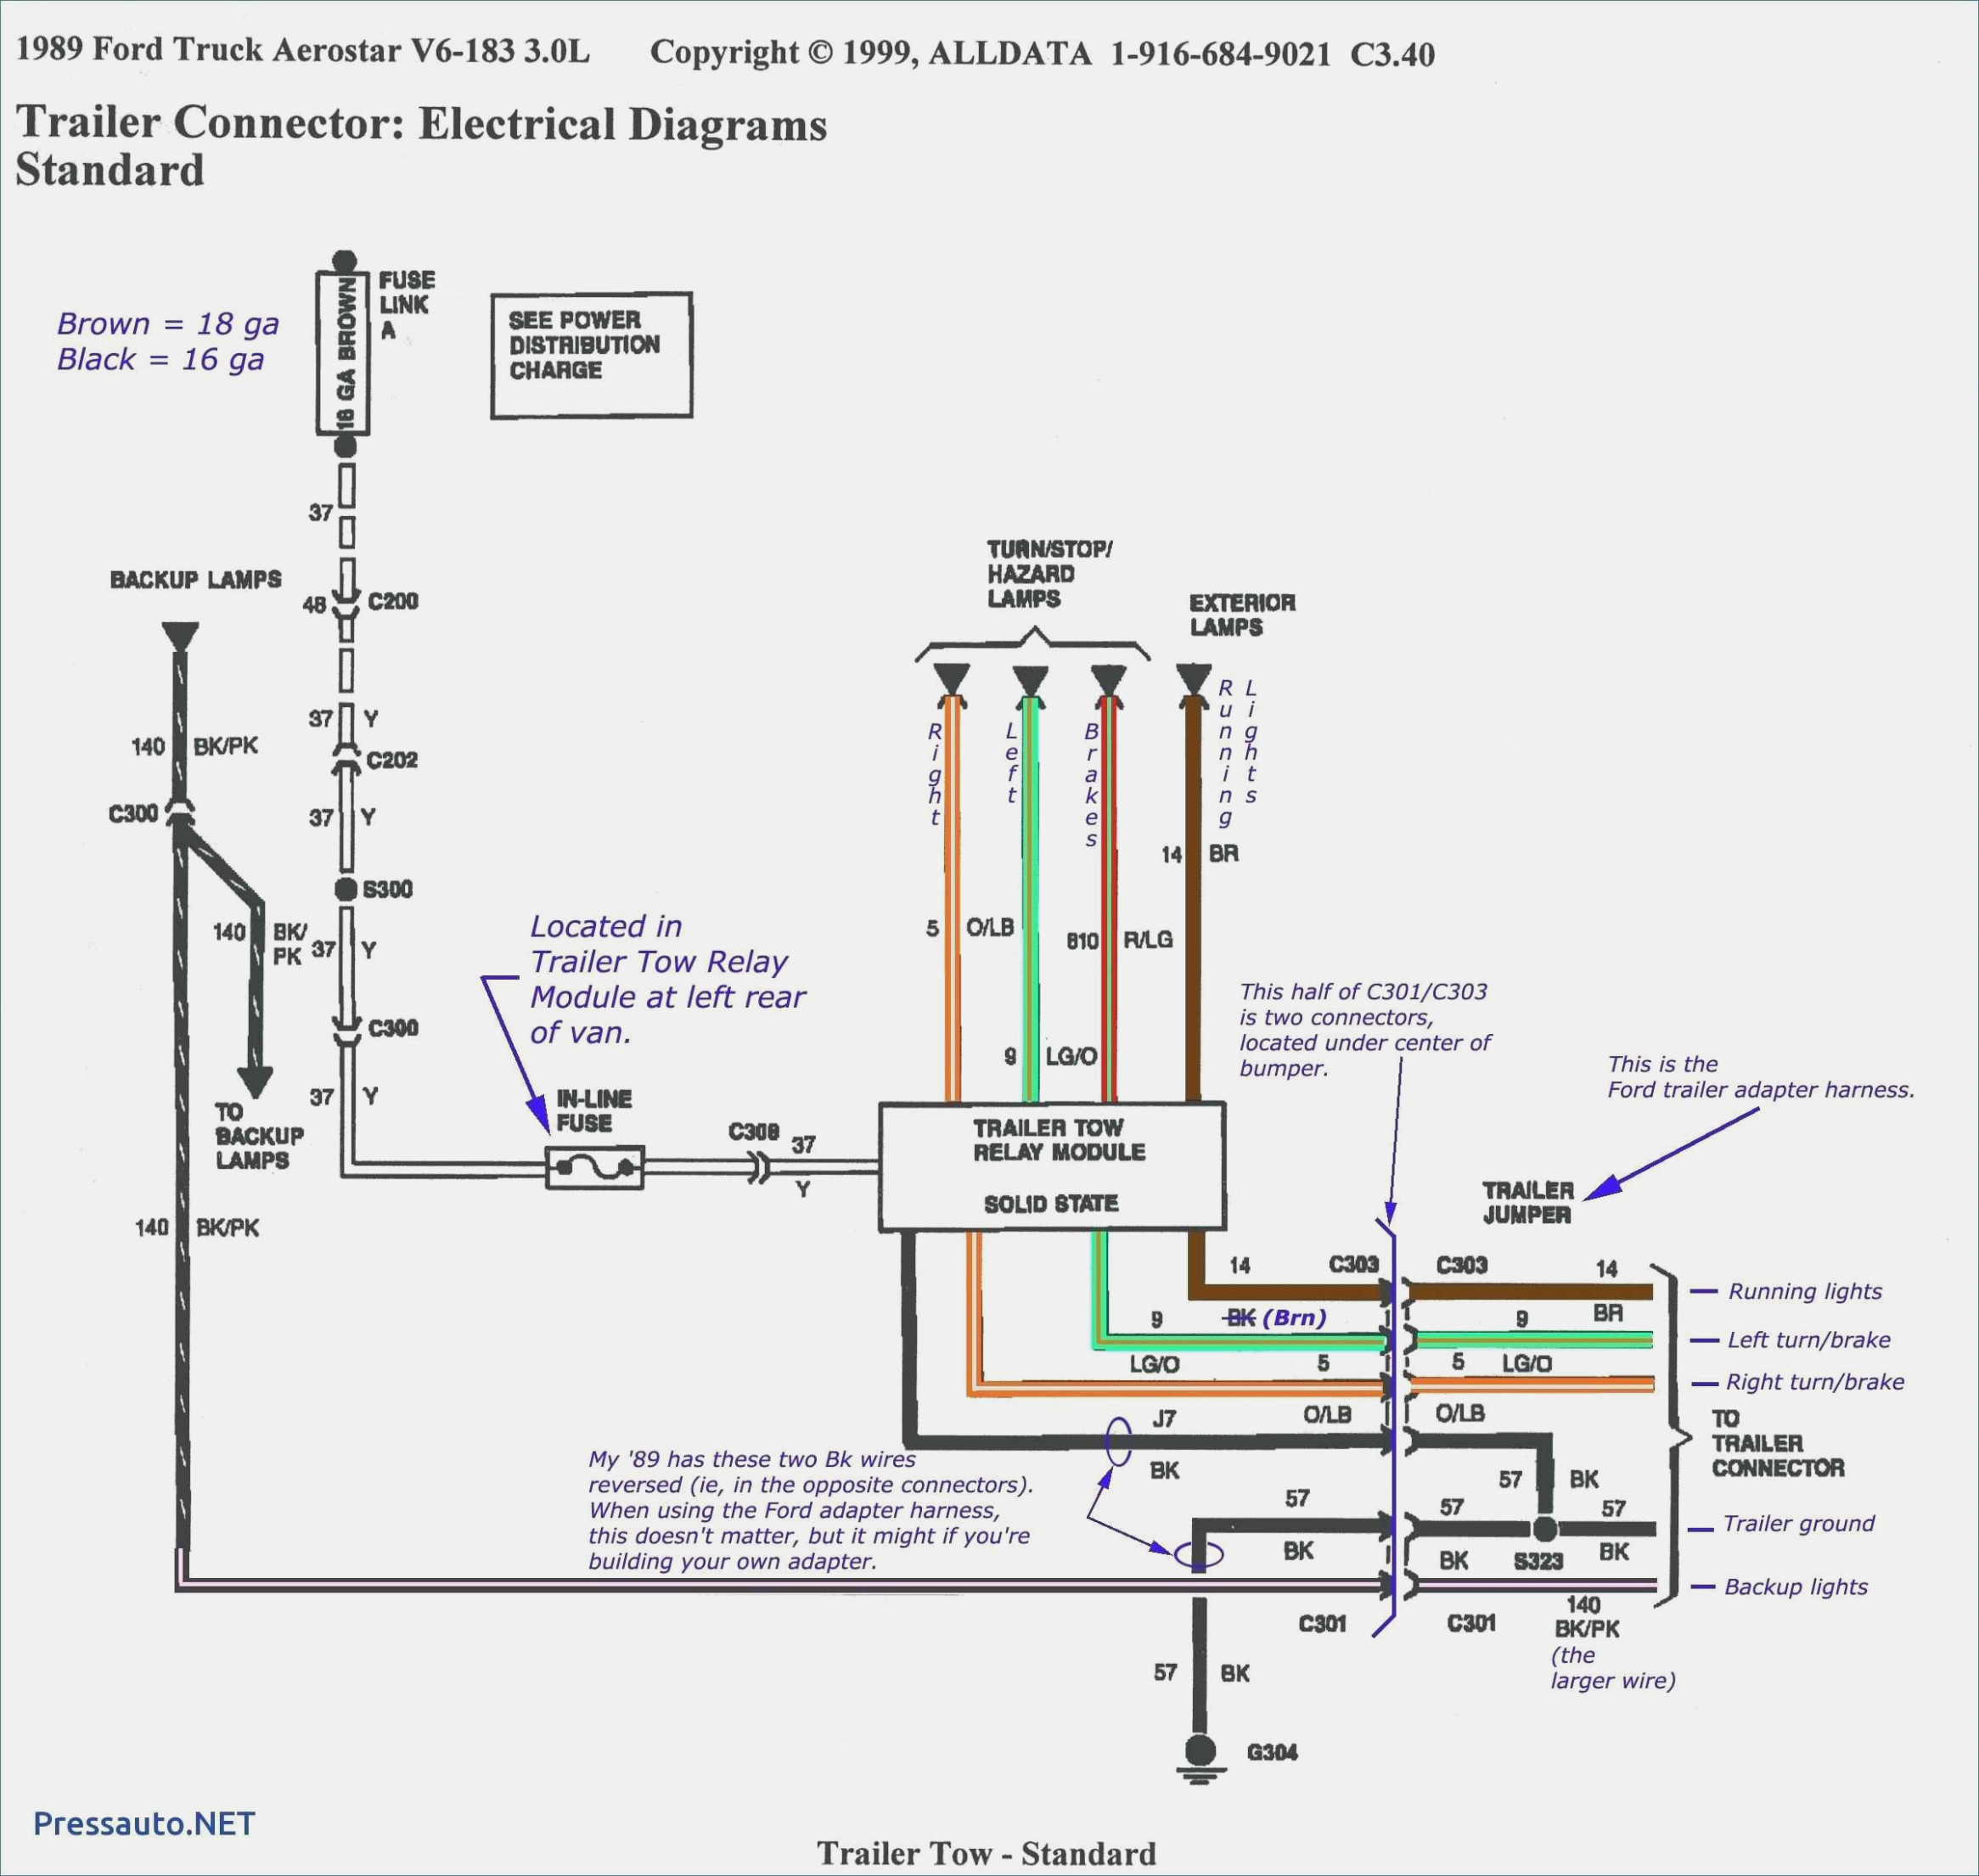 5Th Wheel Wire Diagram | Wiring Diagram - Semi Trailer Wiring Diagram